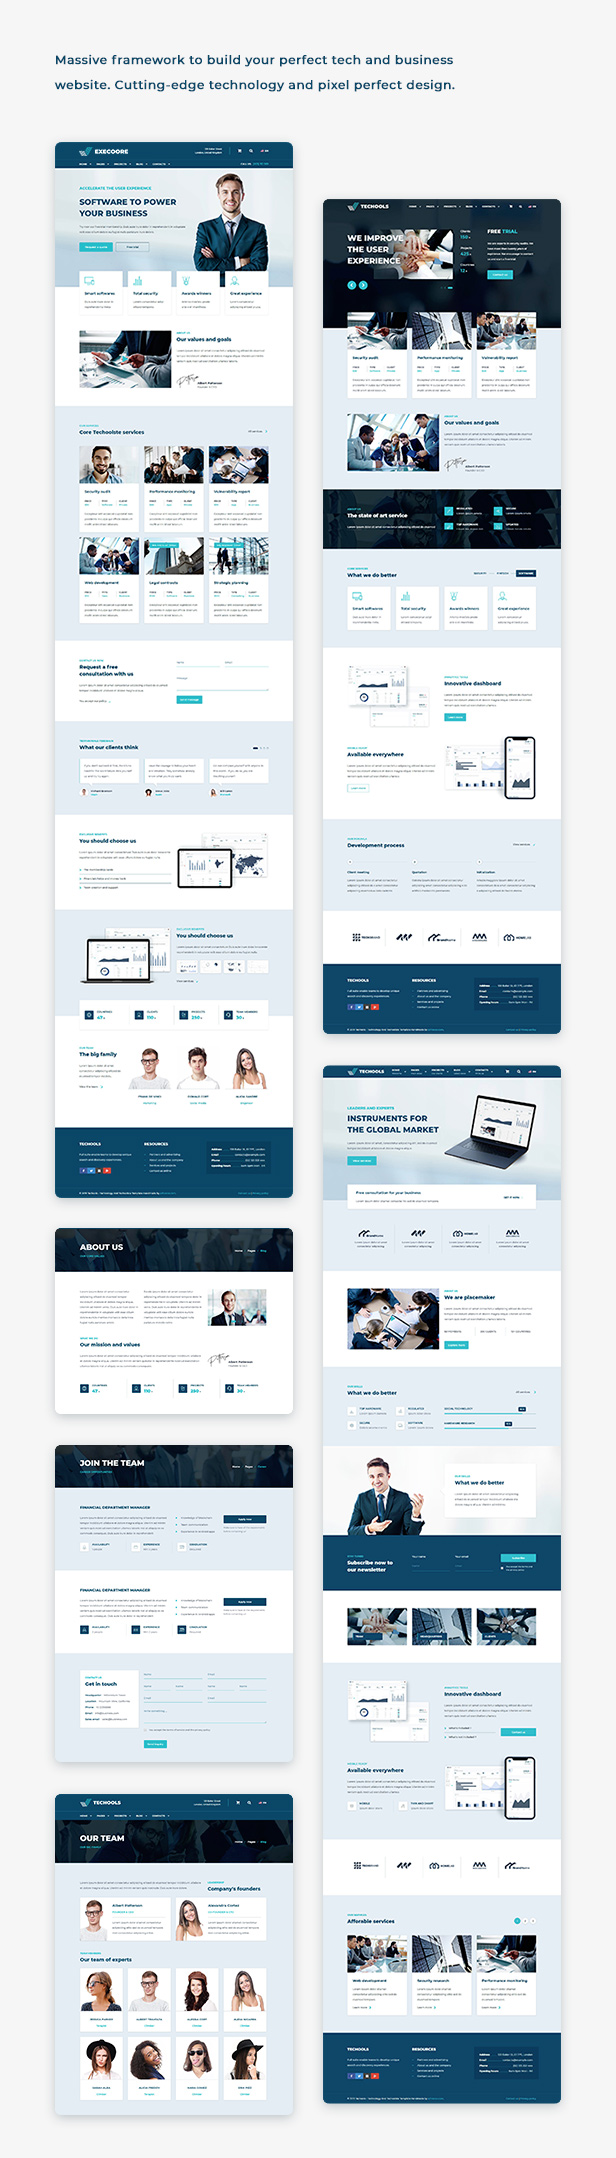 Execoore - Tech And Fintech Template - 1